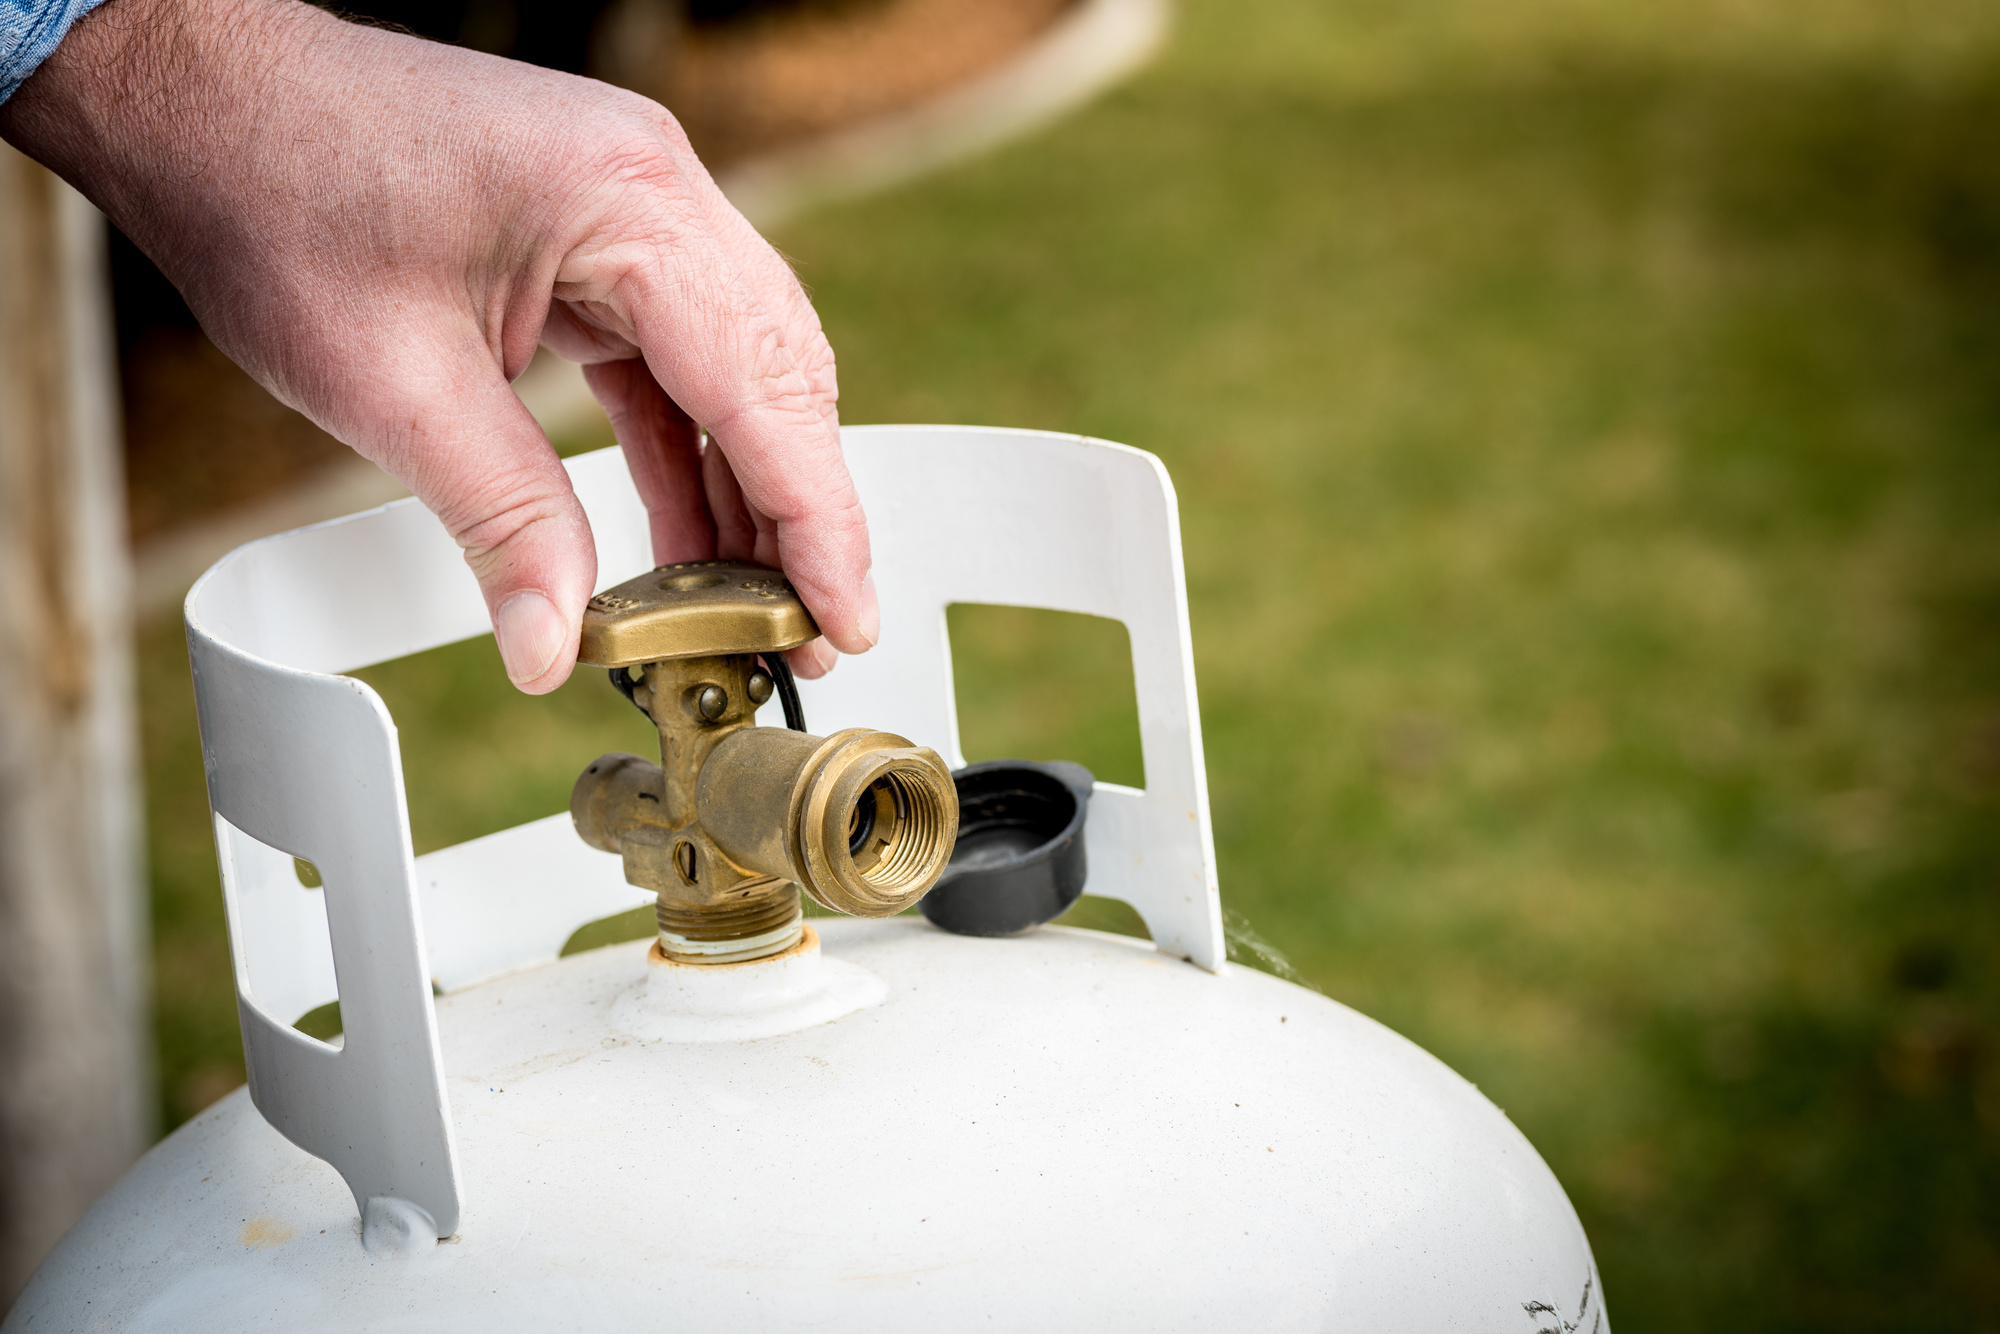 These 3 Propane Accessories Will Make Your King Of The Hill In Your Neighborhood!